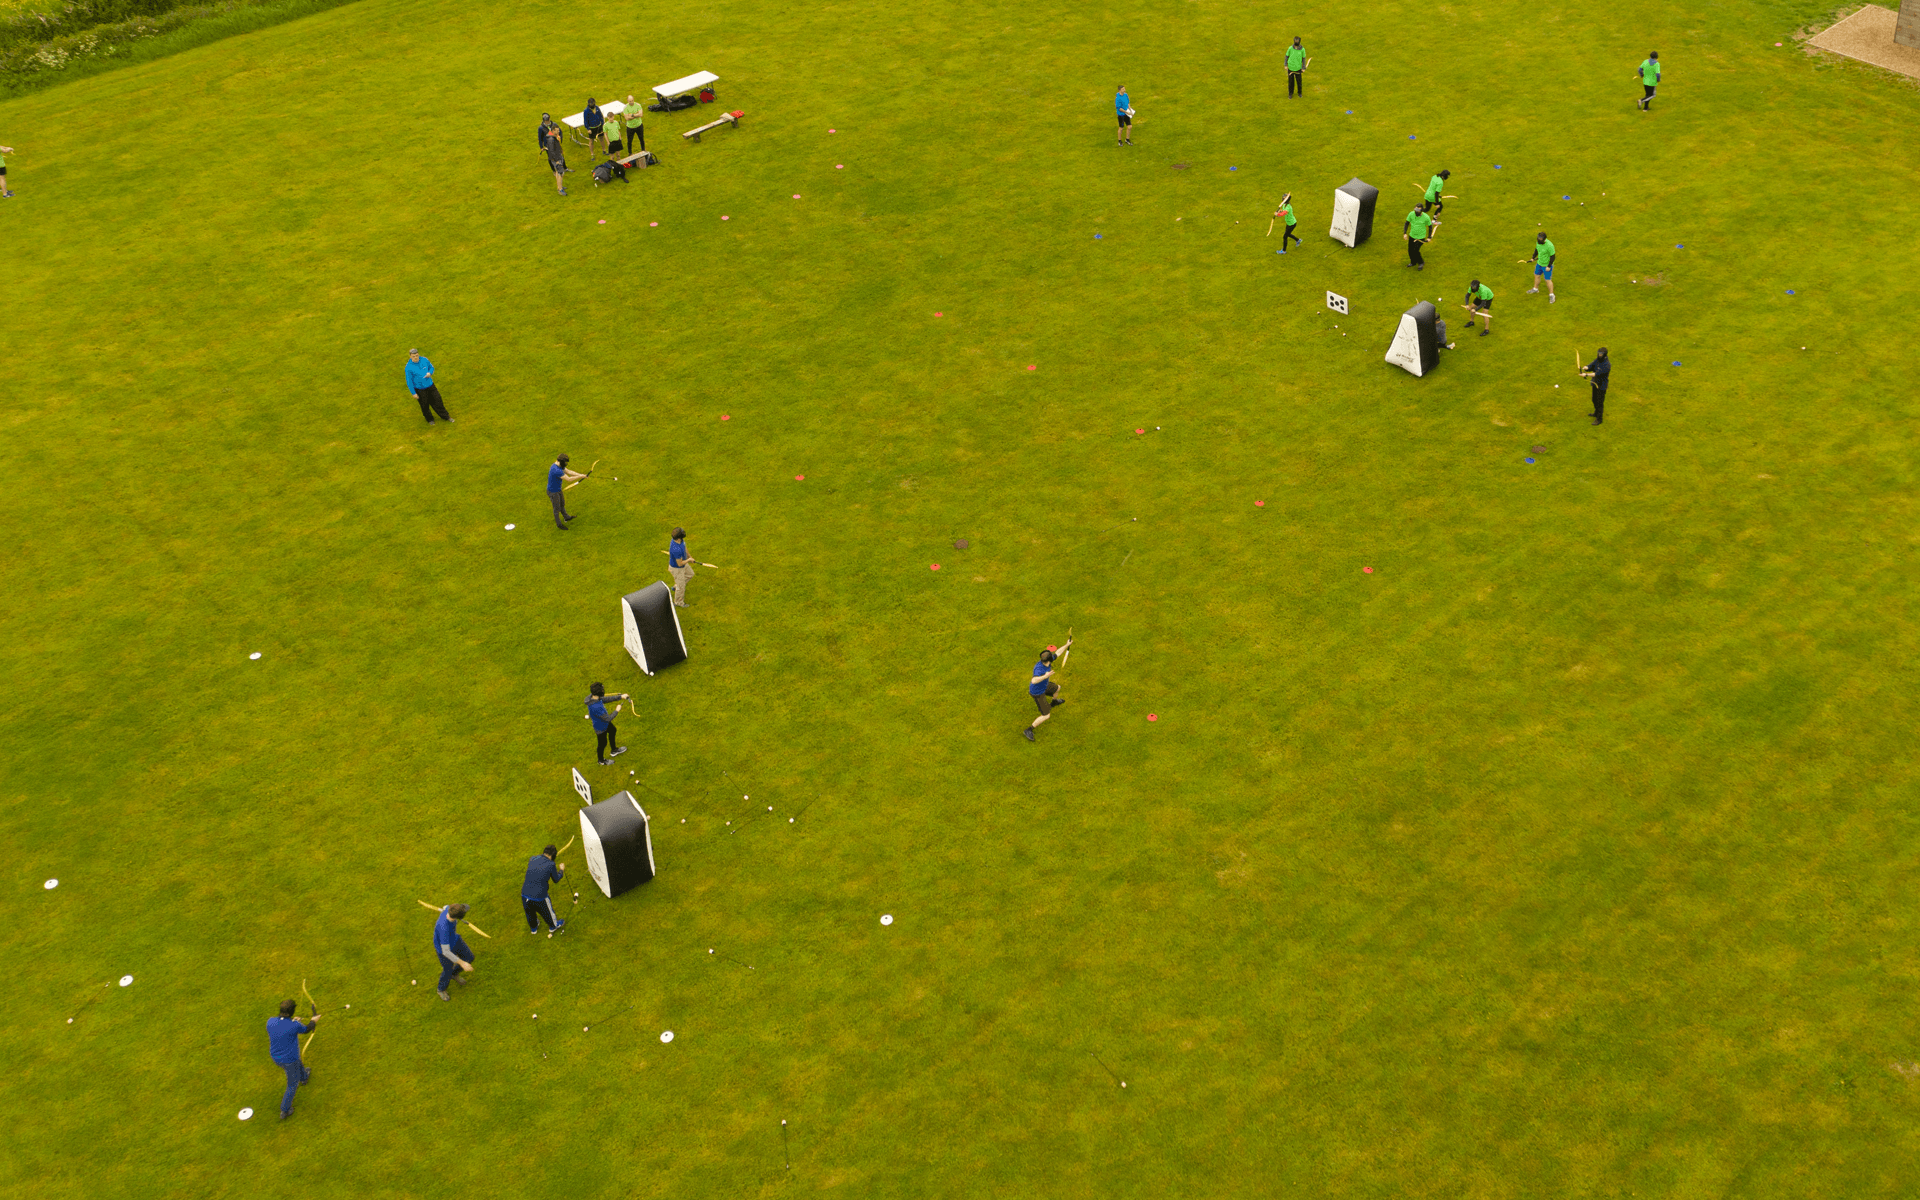 """Mavic 2 Pro"" aerial drone photo of ""Hydrock"" employees playing arrow tag at corporate event in almondsbury bristol"